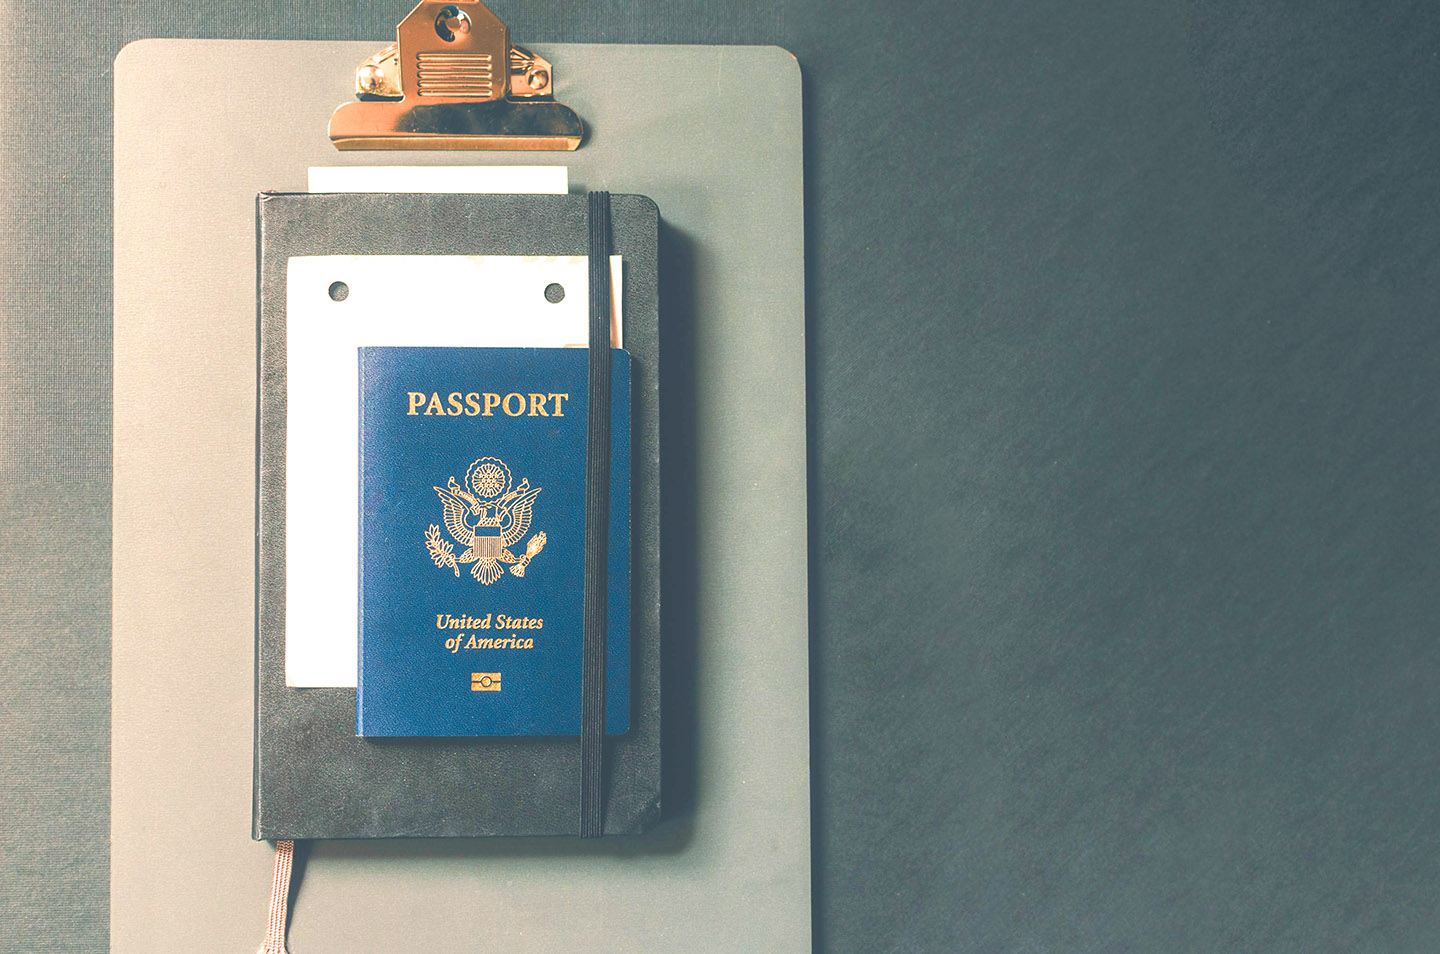 Lost Passport: What to do